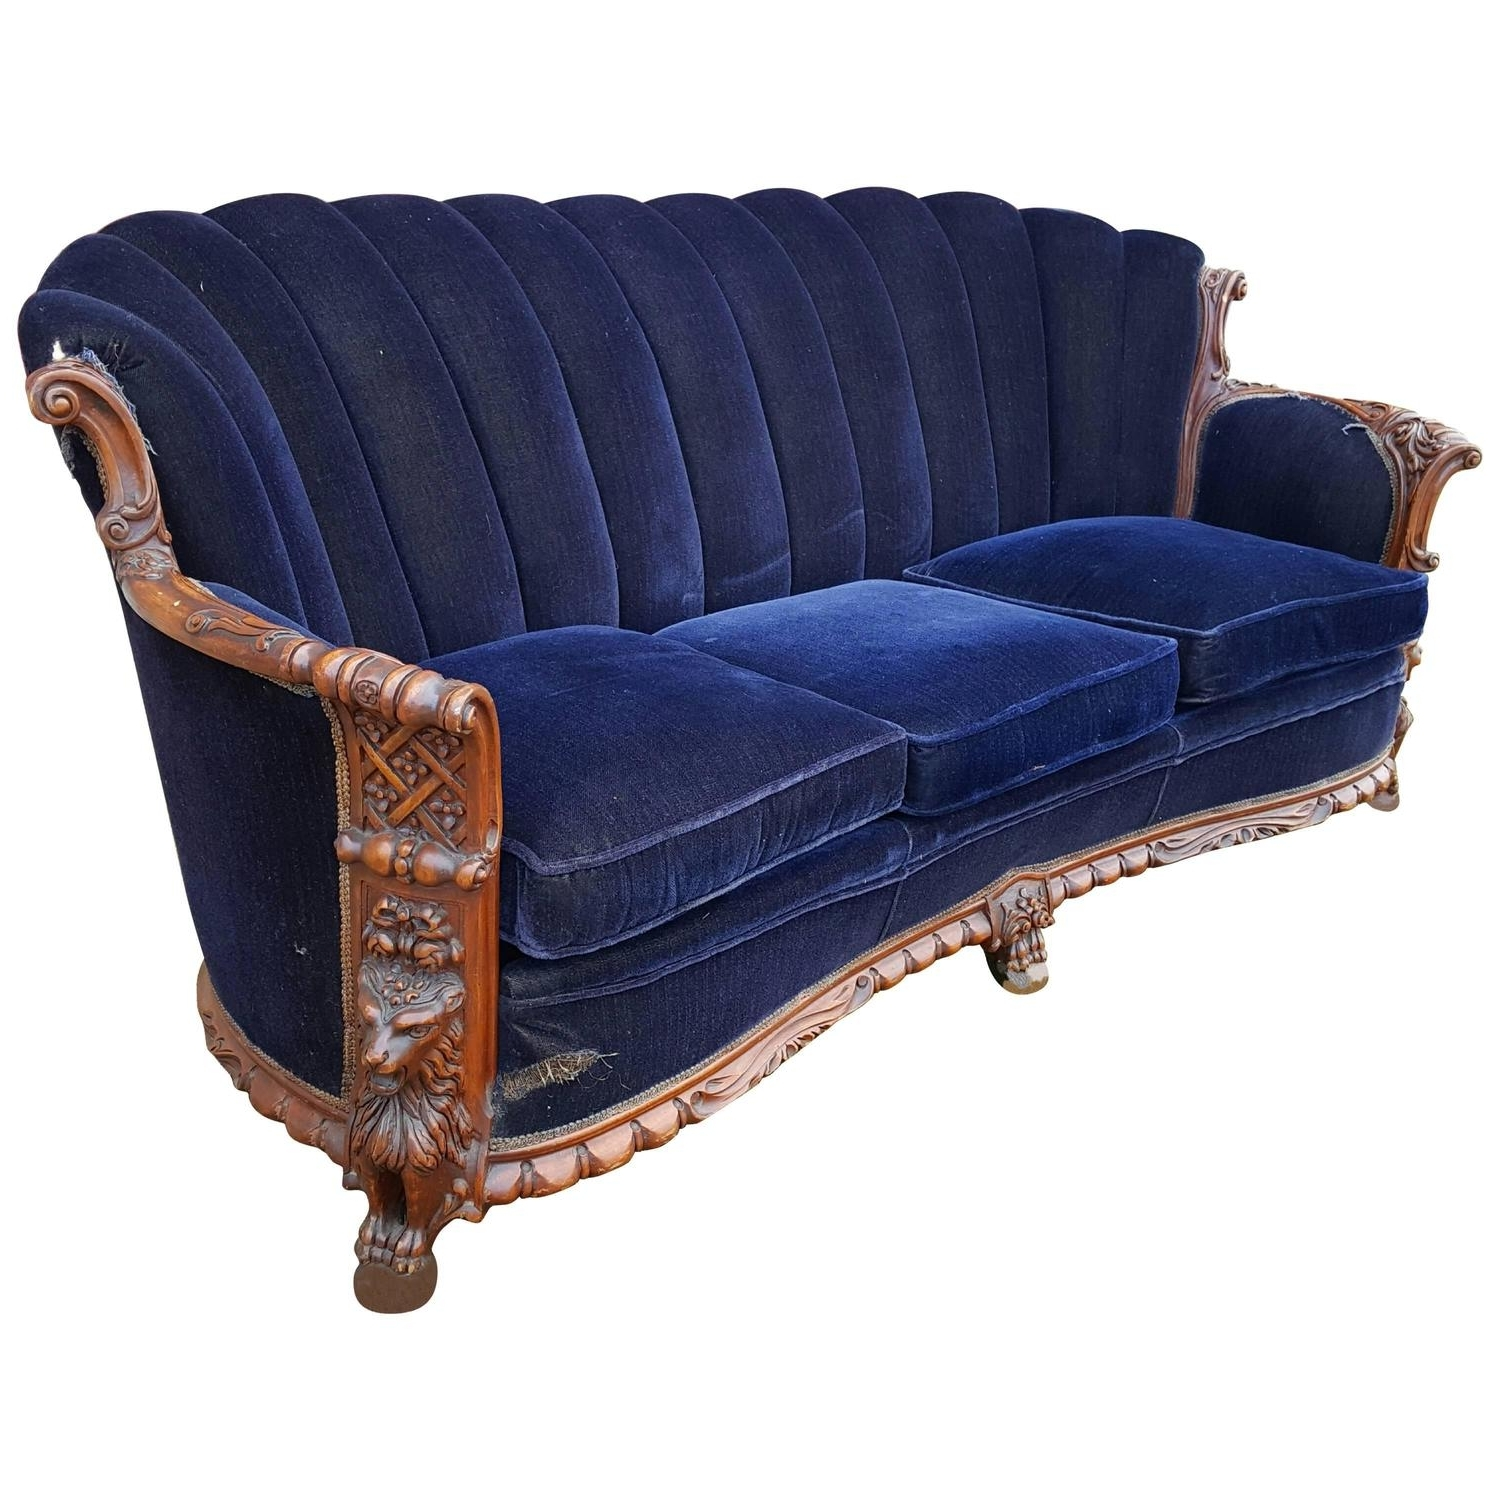 Trendy 1930S Mohair And Carved Wood Sofa, Carved Lion Motif At 1Stdibs Pertaining To 1930S Sofas (View 3 of 15)